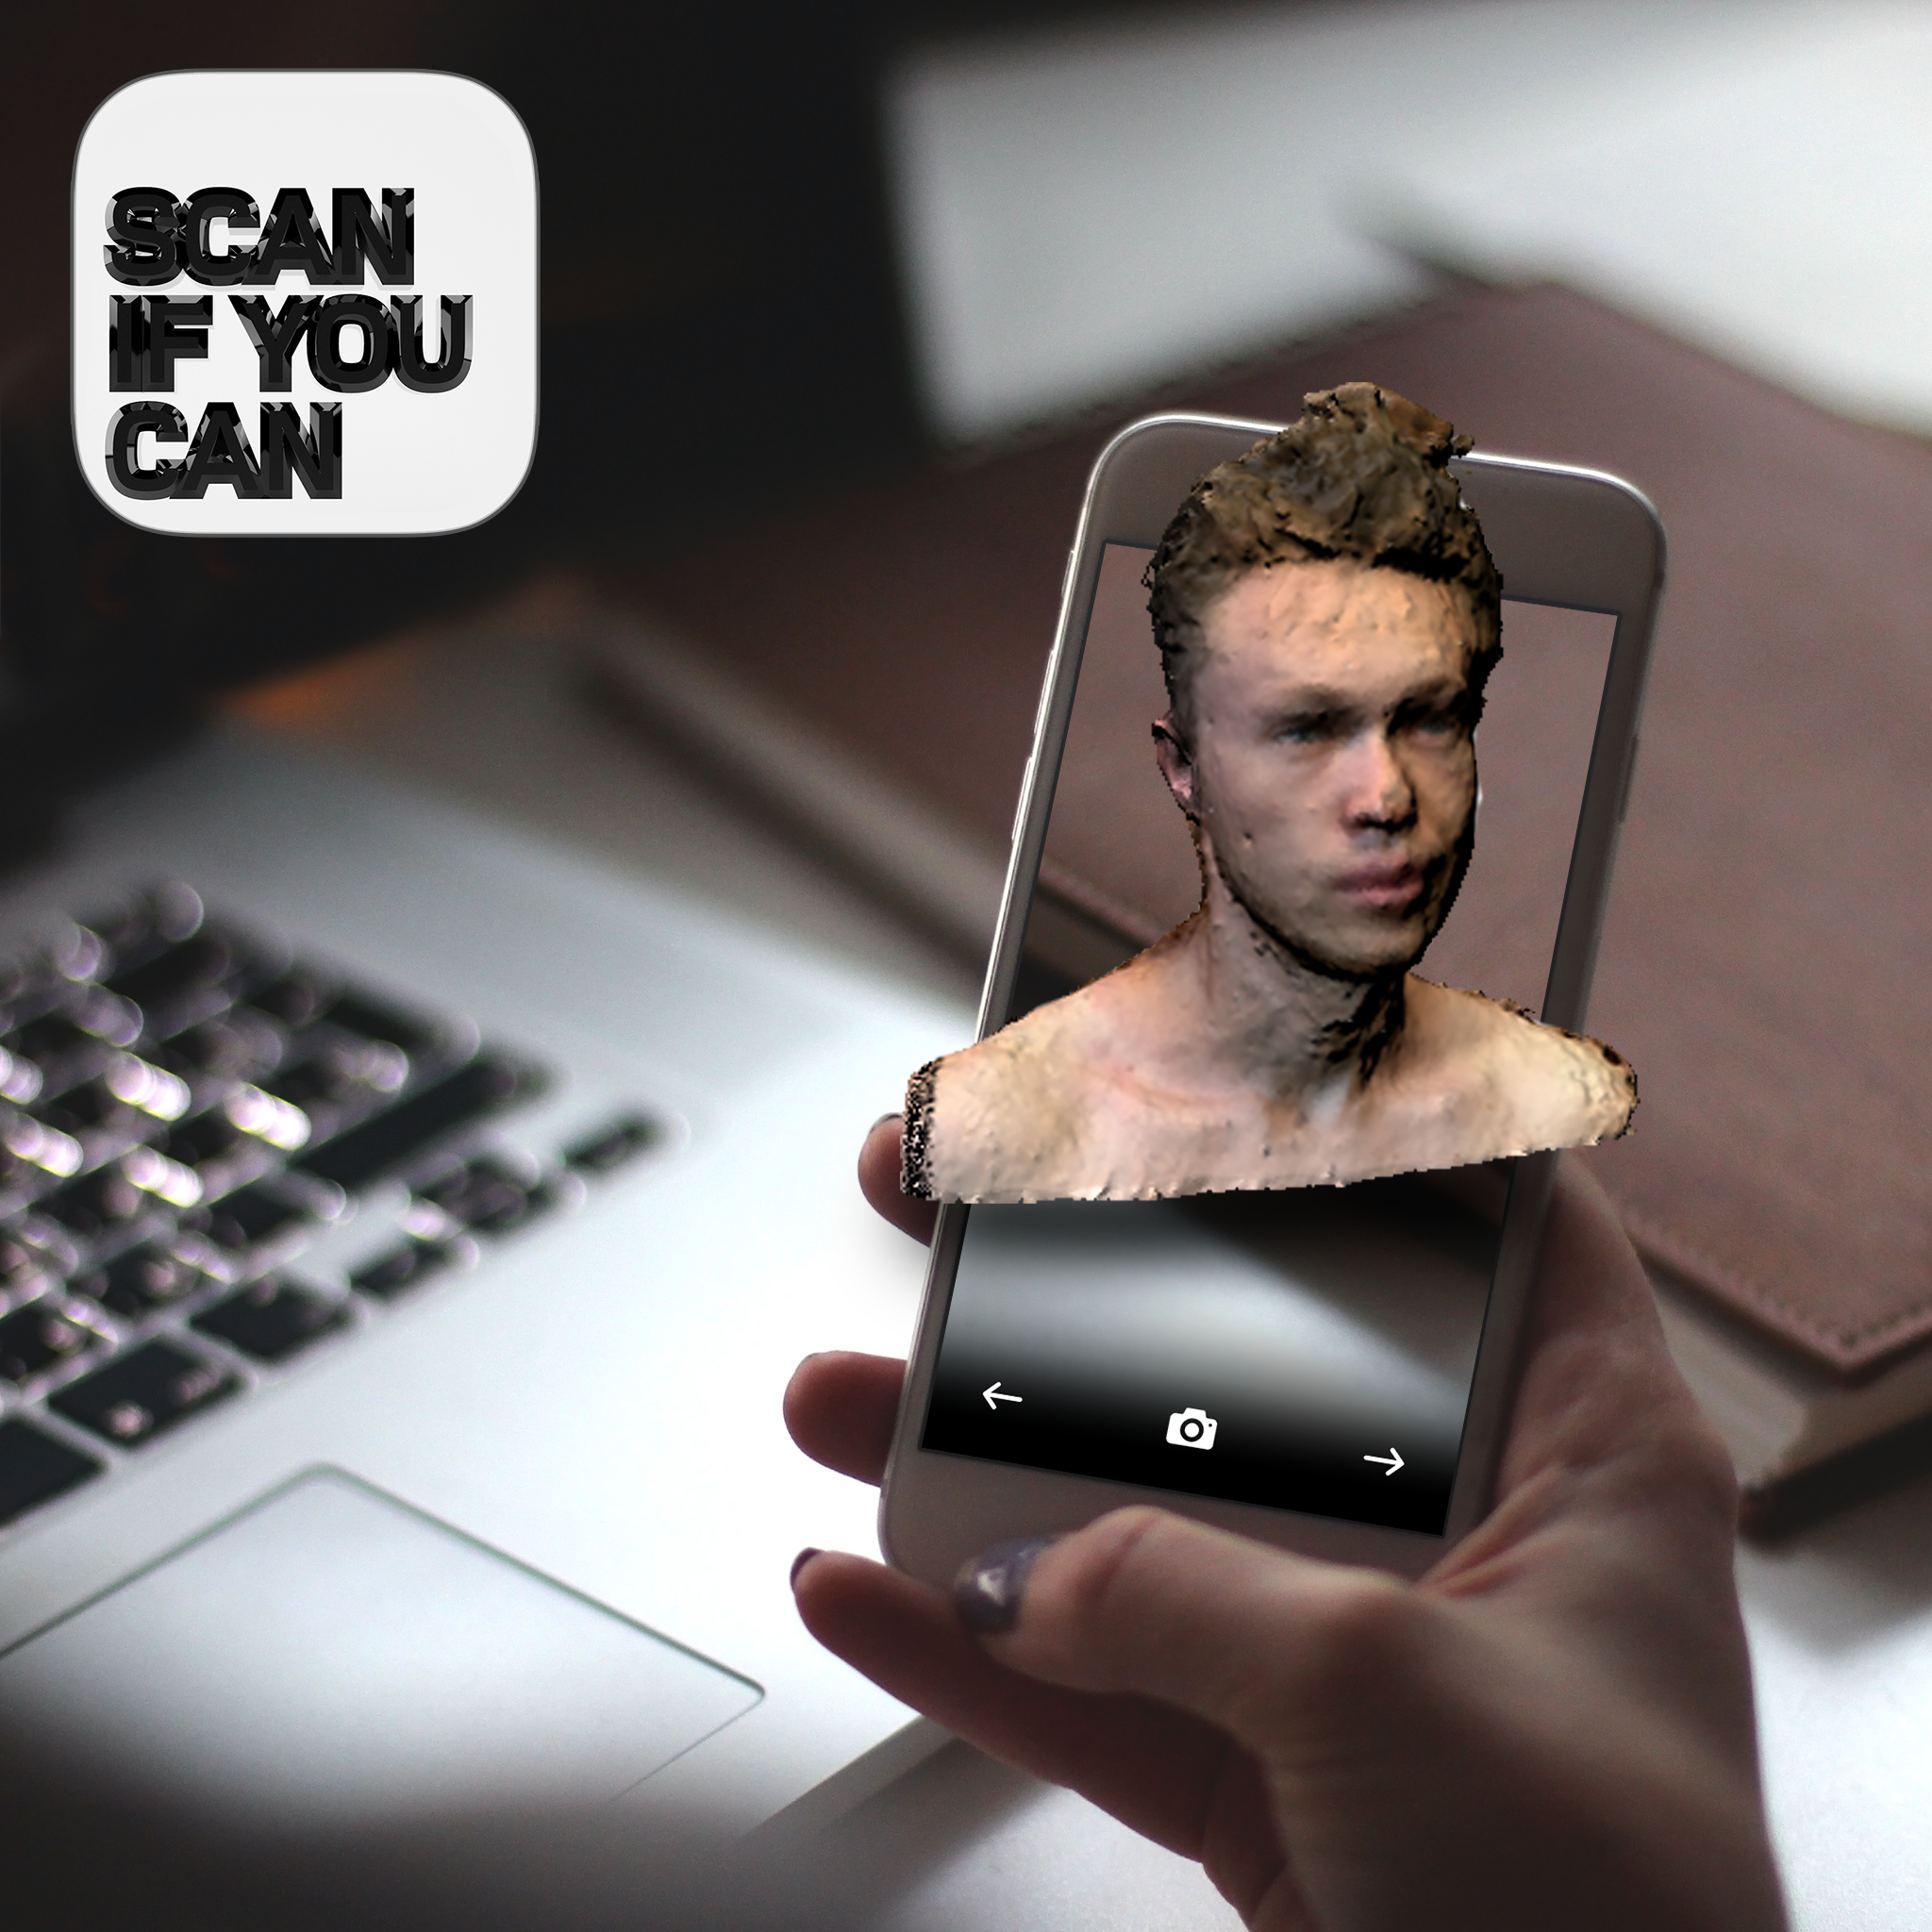 Scan IF You Can (Augmented Reality)